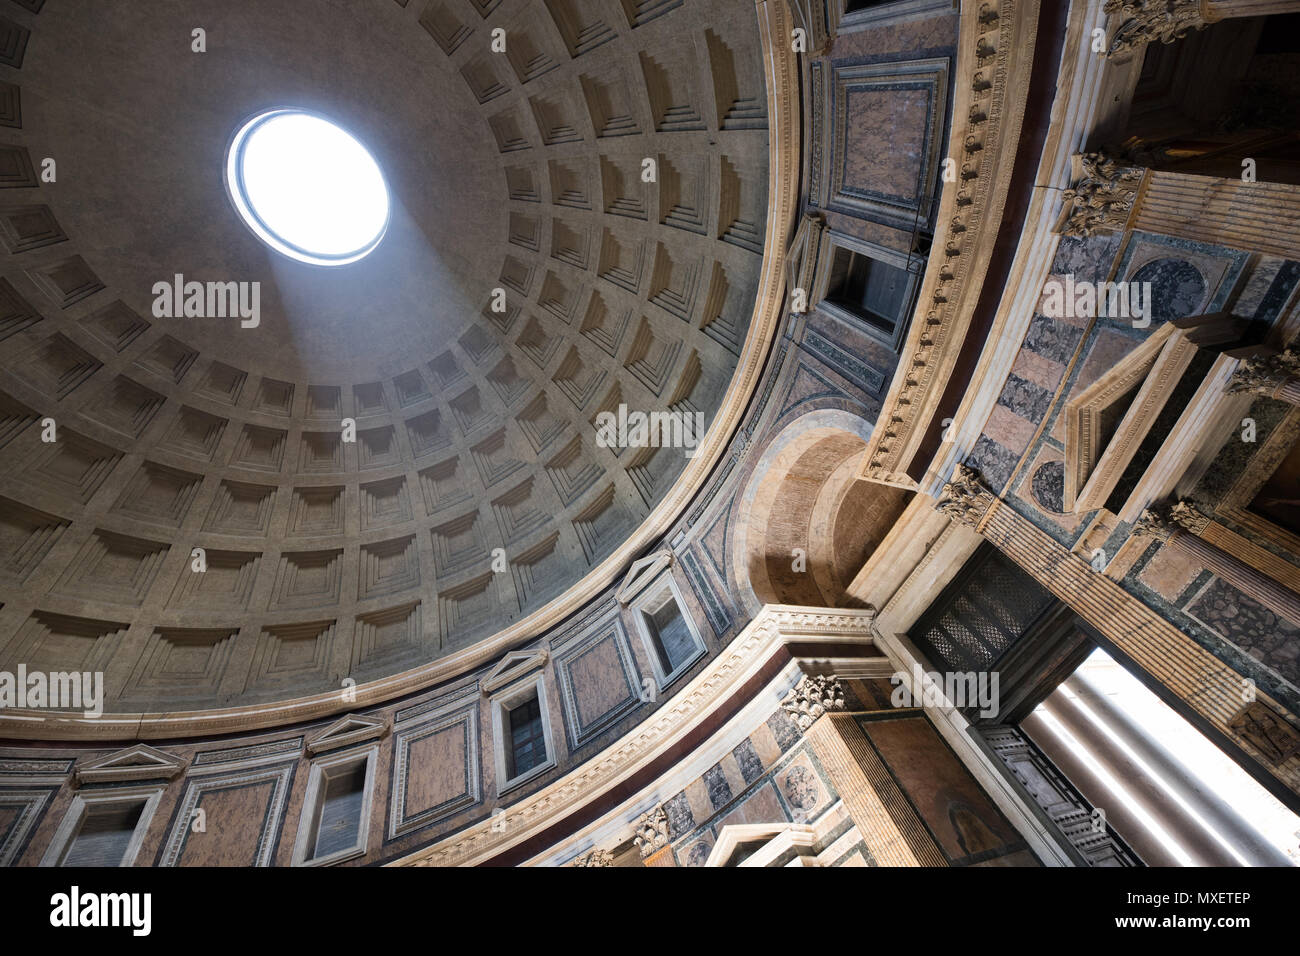 Rome Pantheon interior, light true the hole on dome, achitecture, Italy - Stock Image